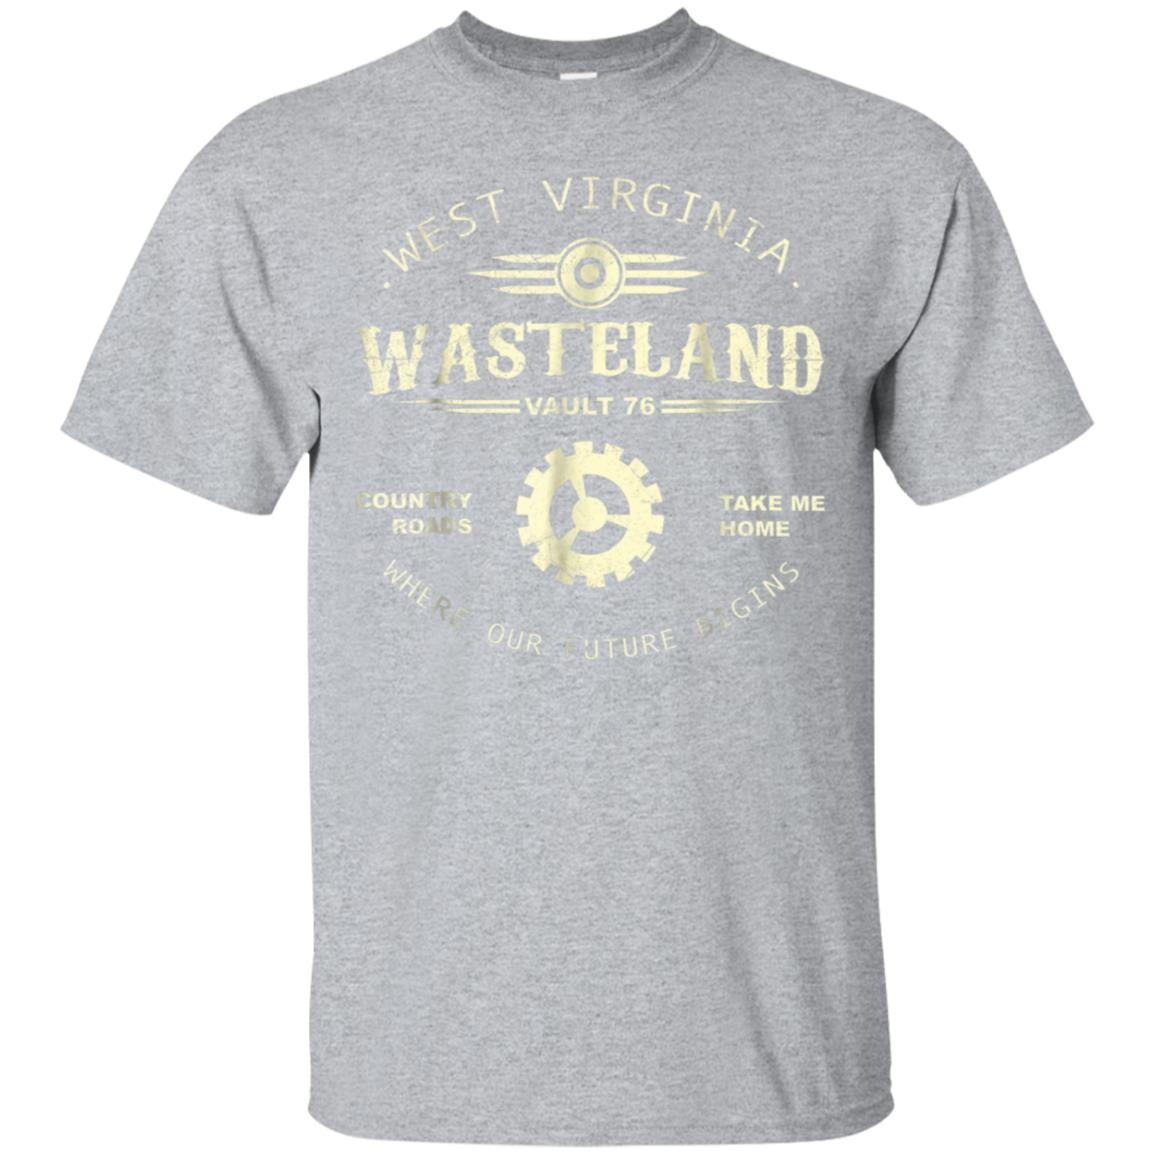 Fall out 76 West Virginia Wasteland Country roads t-shirt 99promocode